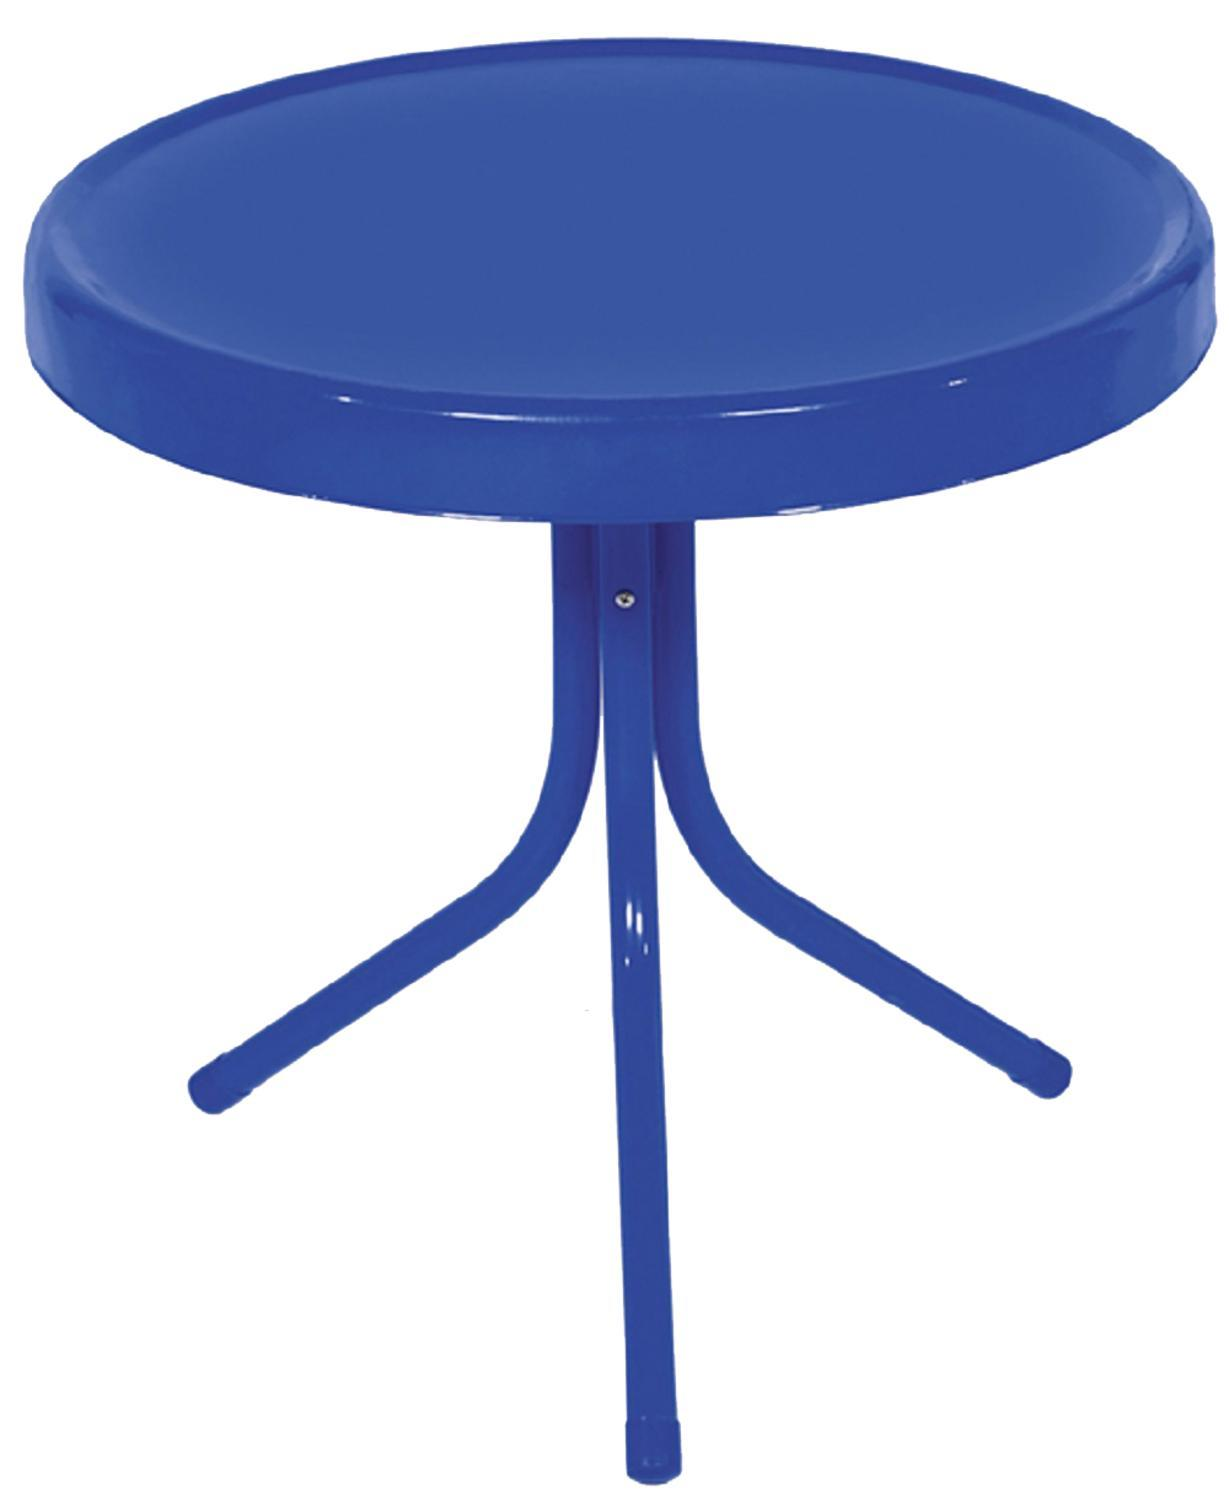 electric blue retro metal tulip outdoor side table piece dining set mosaic beverage cooler lawn chair cushions nesting tables foyer and mirror purple furniture room sets for small